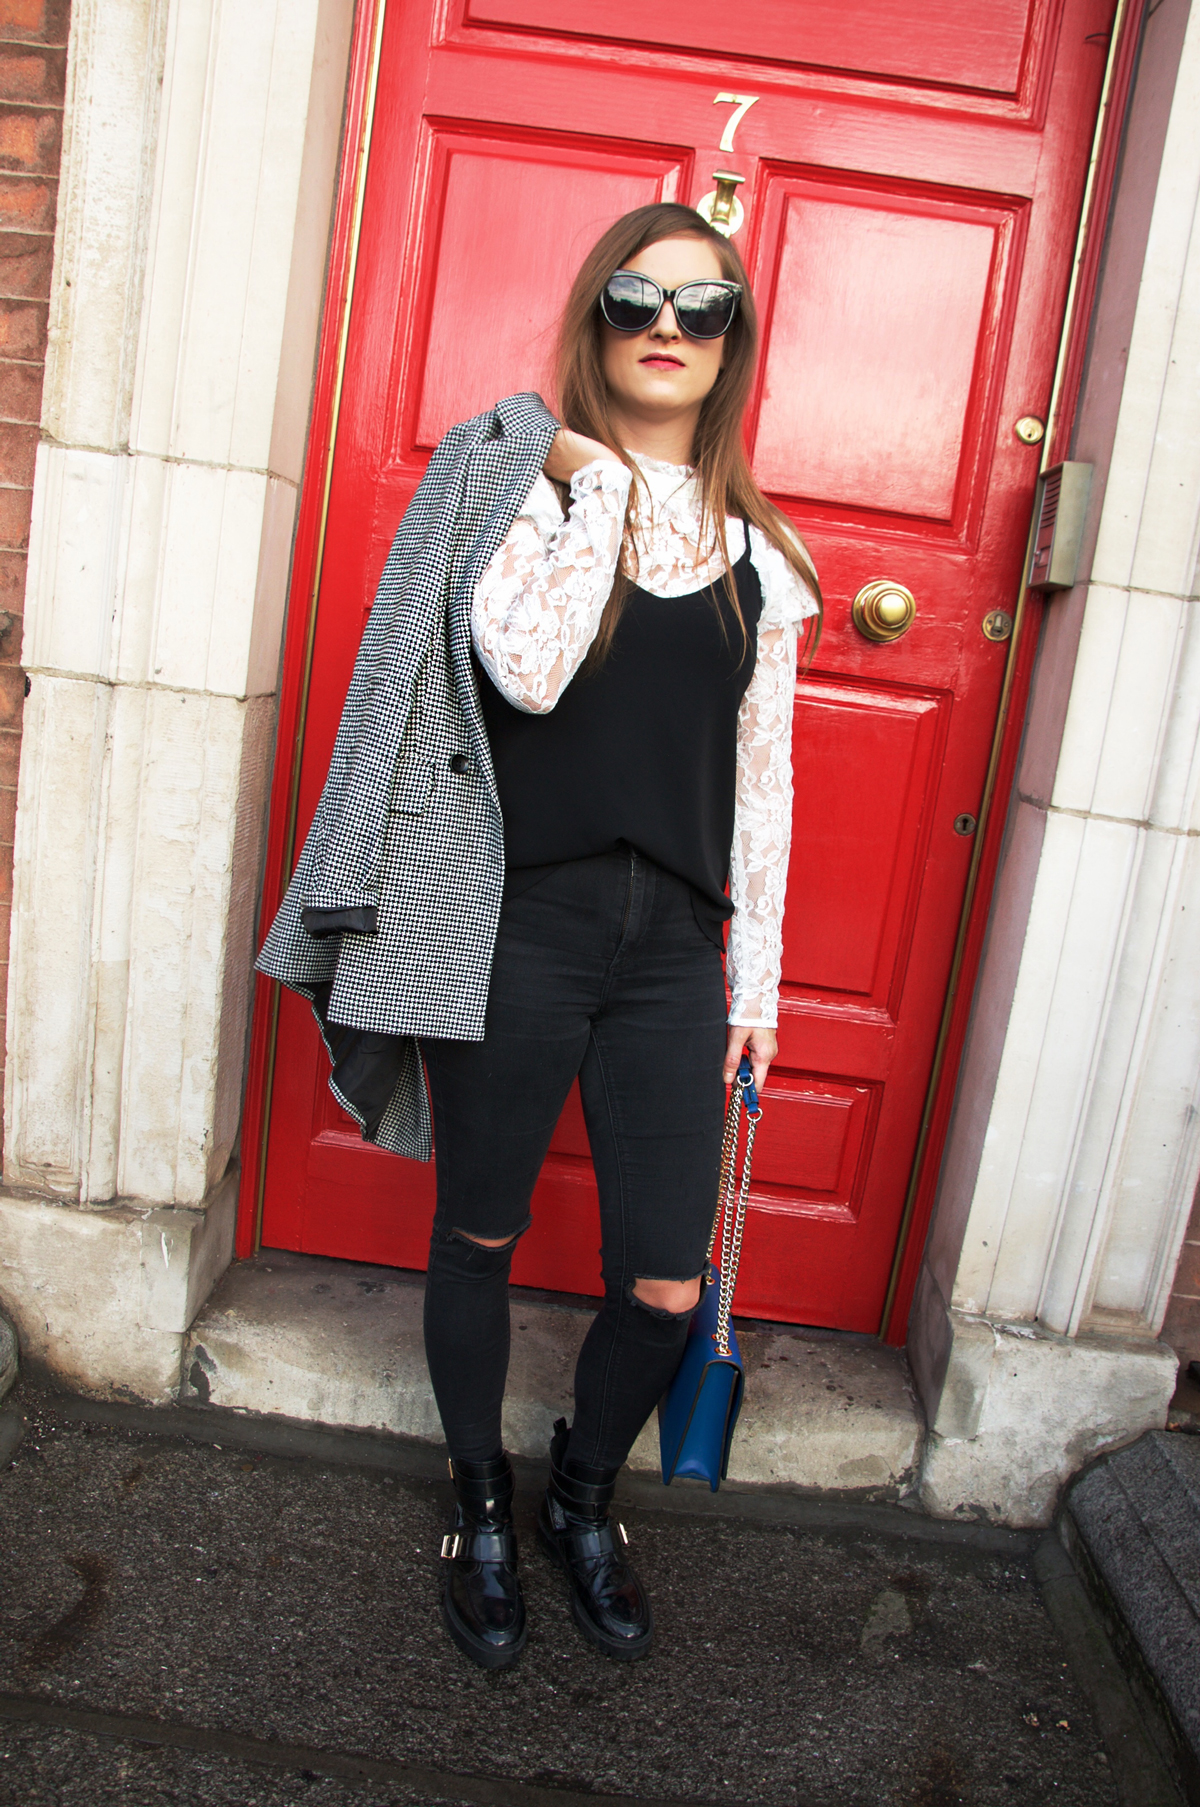 Mode blog, Strawberries & Champagne von Andrea Steiner sagt, was Sie am Layering-Look liebt.